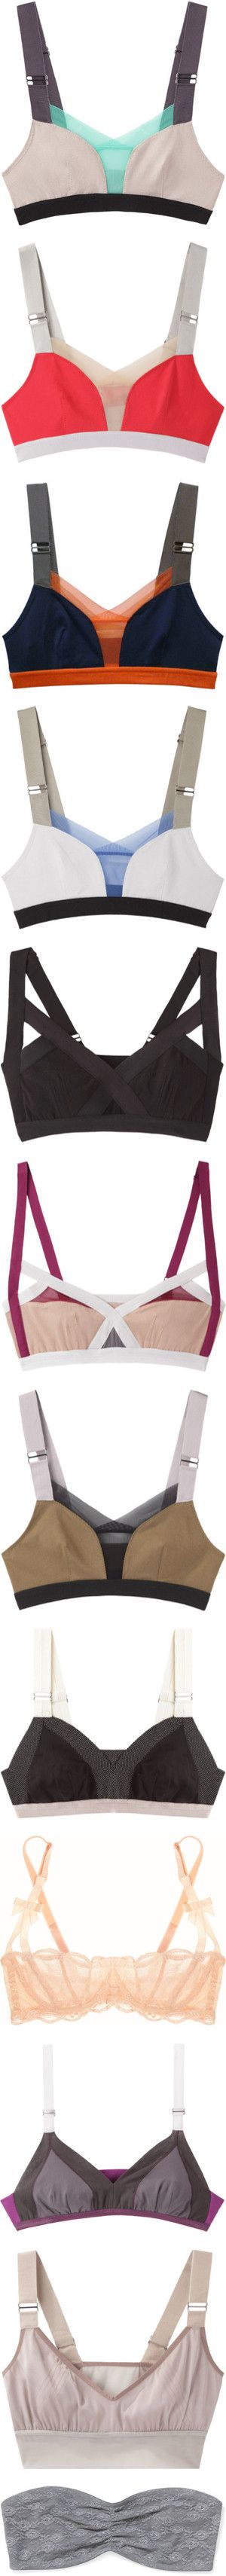 TOP (Bras) by novalikarida on Polyvore featuring women's fashion, intimates, bras, tops, underwear, lingerie, bralets, petite, adjustable bra and bralette bras